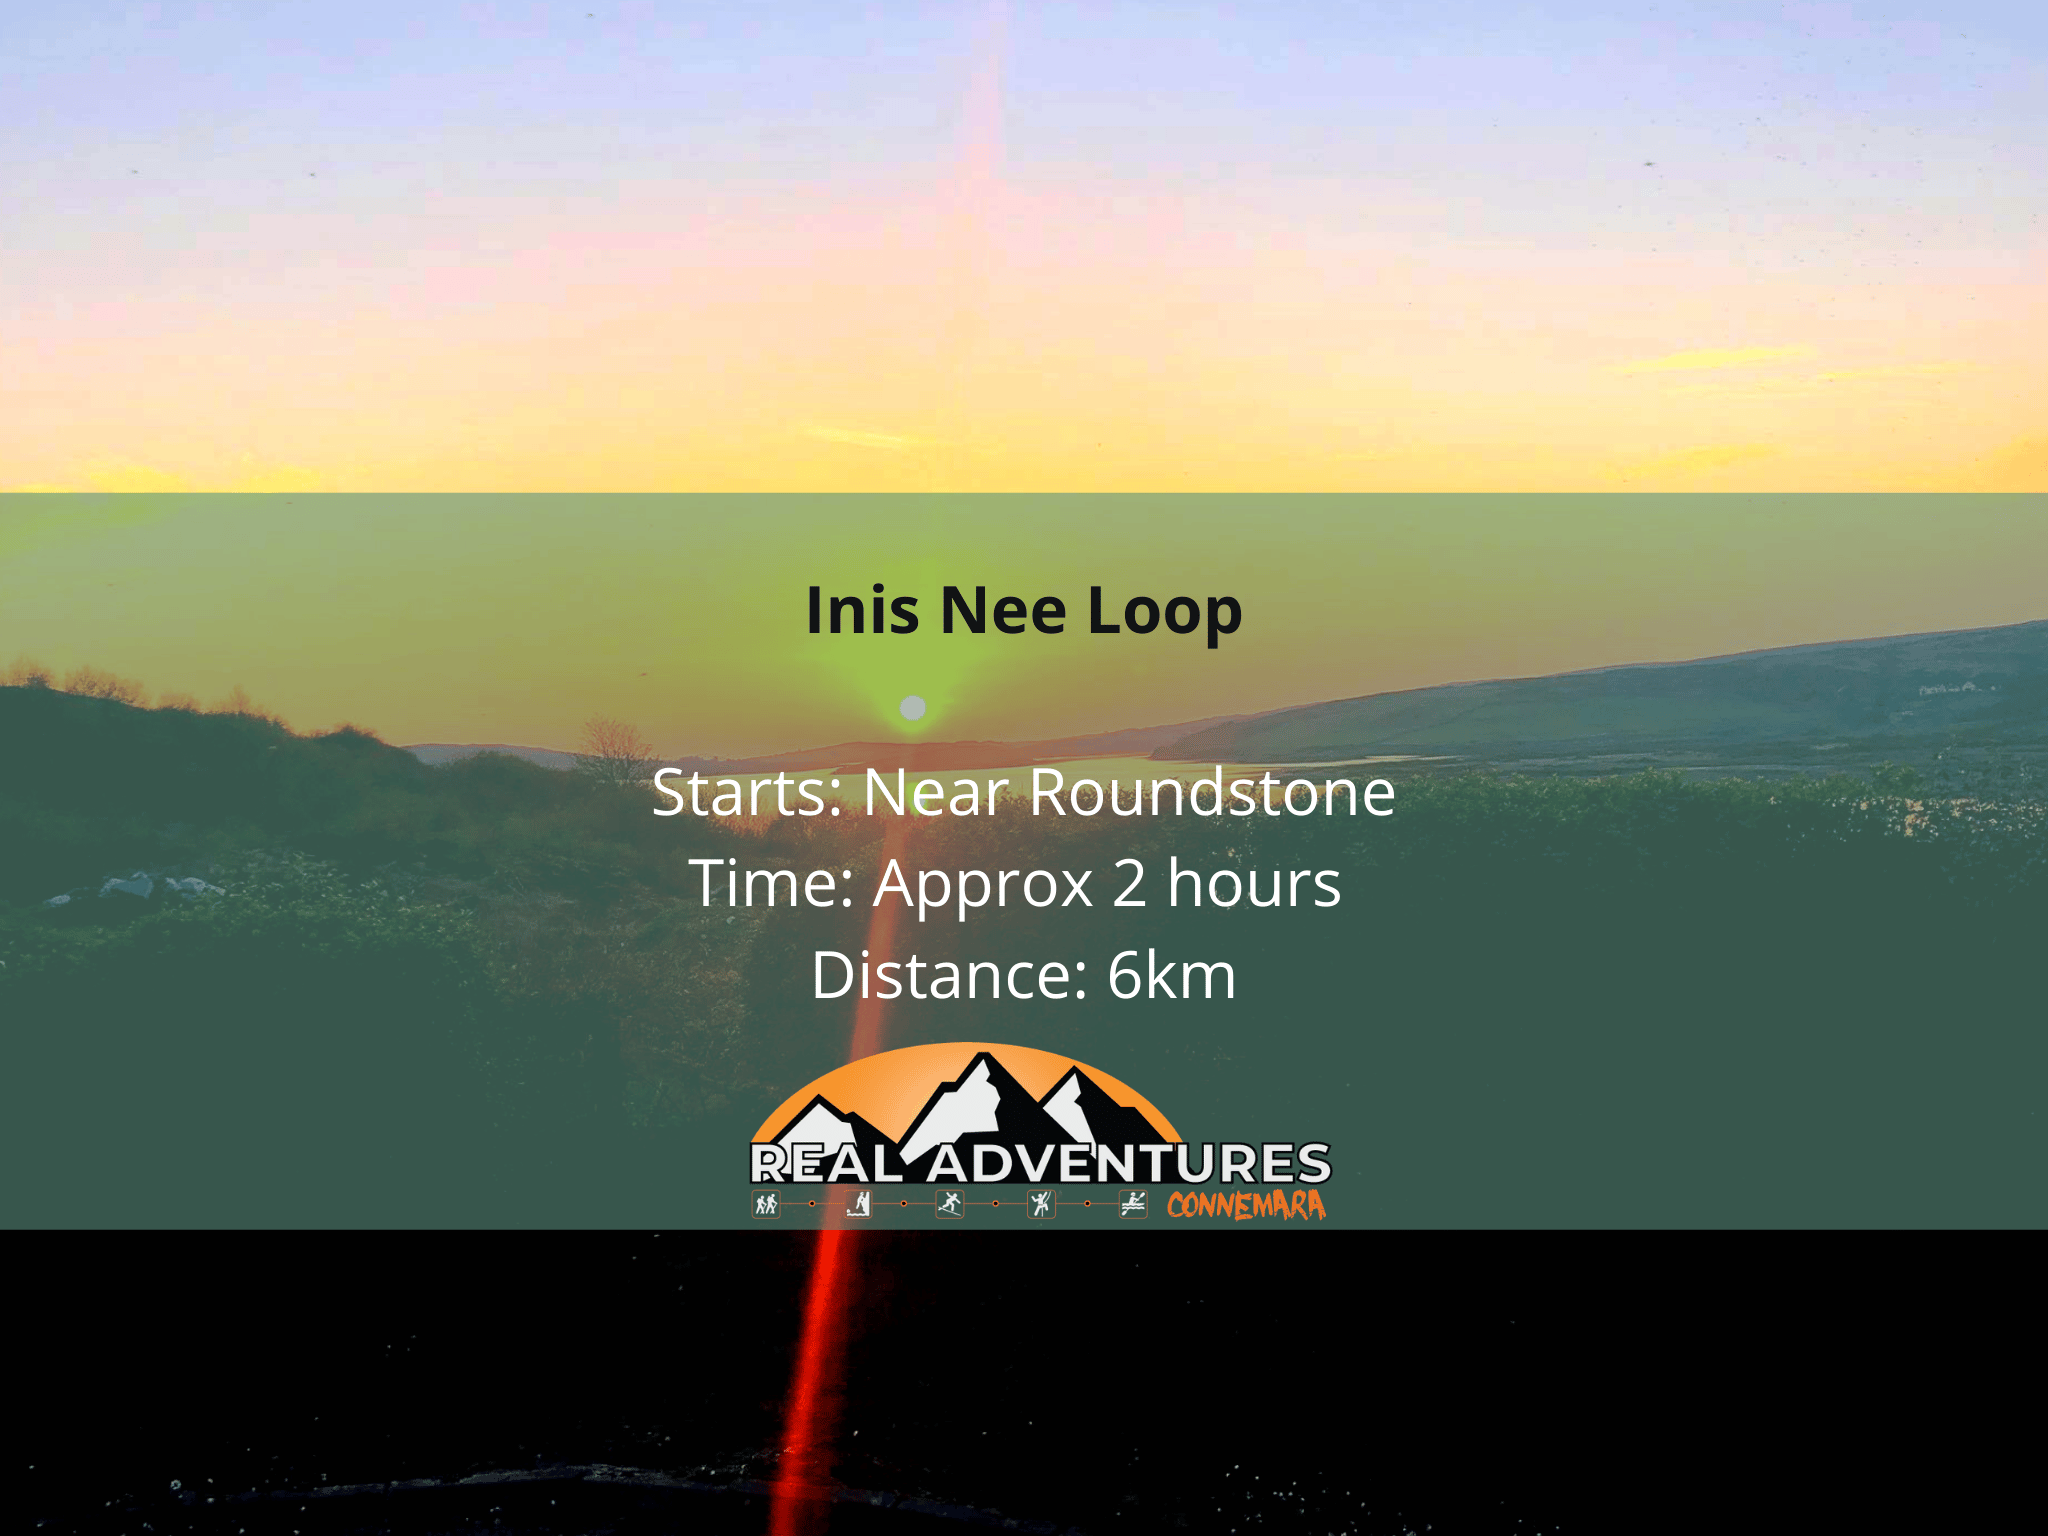 sunset image with text stating walking trail details